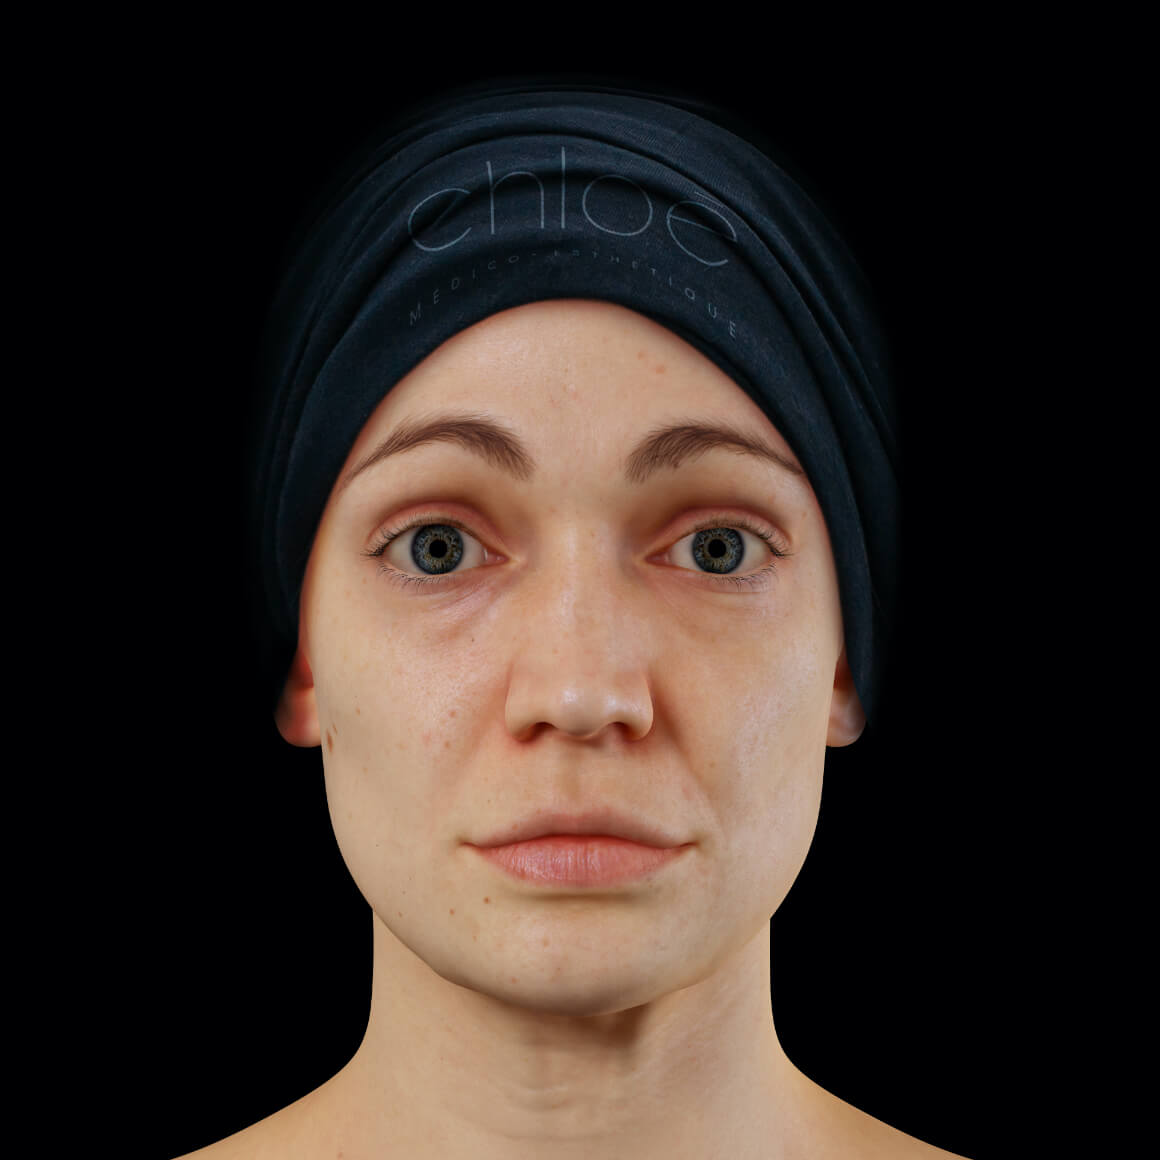 Female patient at Clinique Chloé facing front after dermal filler injections to treat facial skin laxity